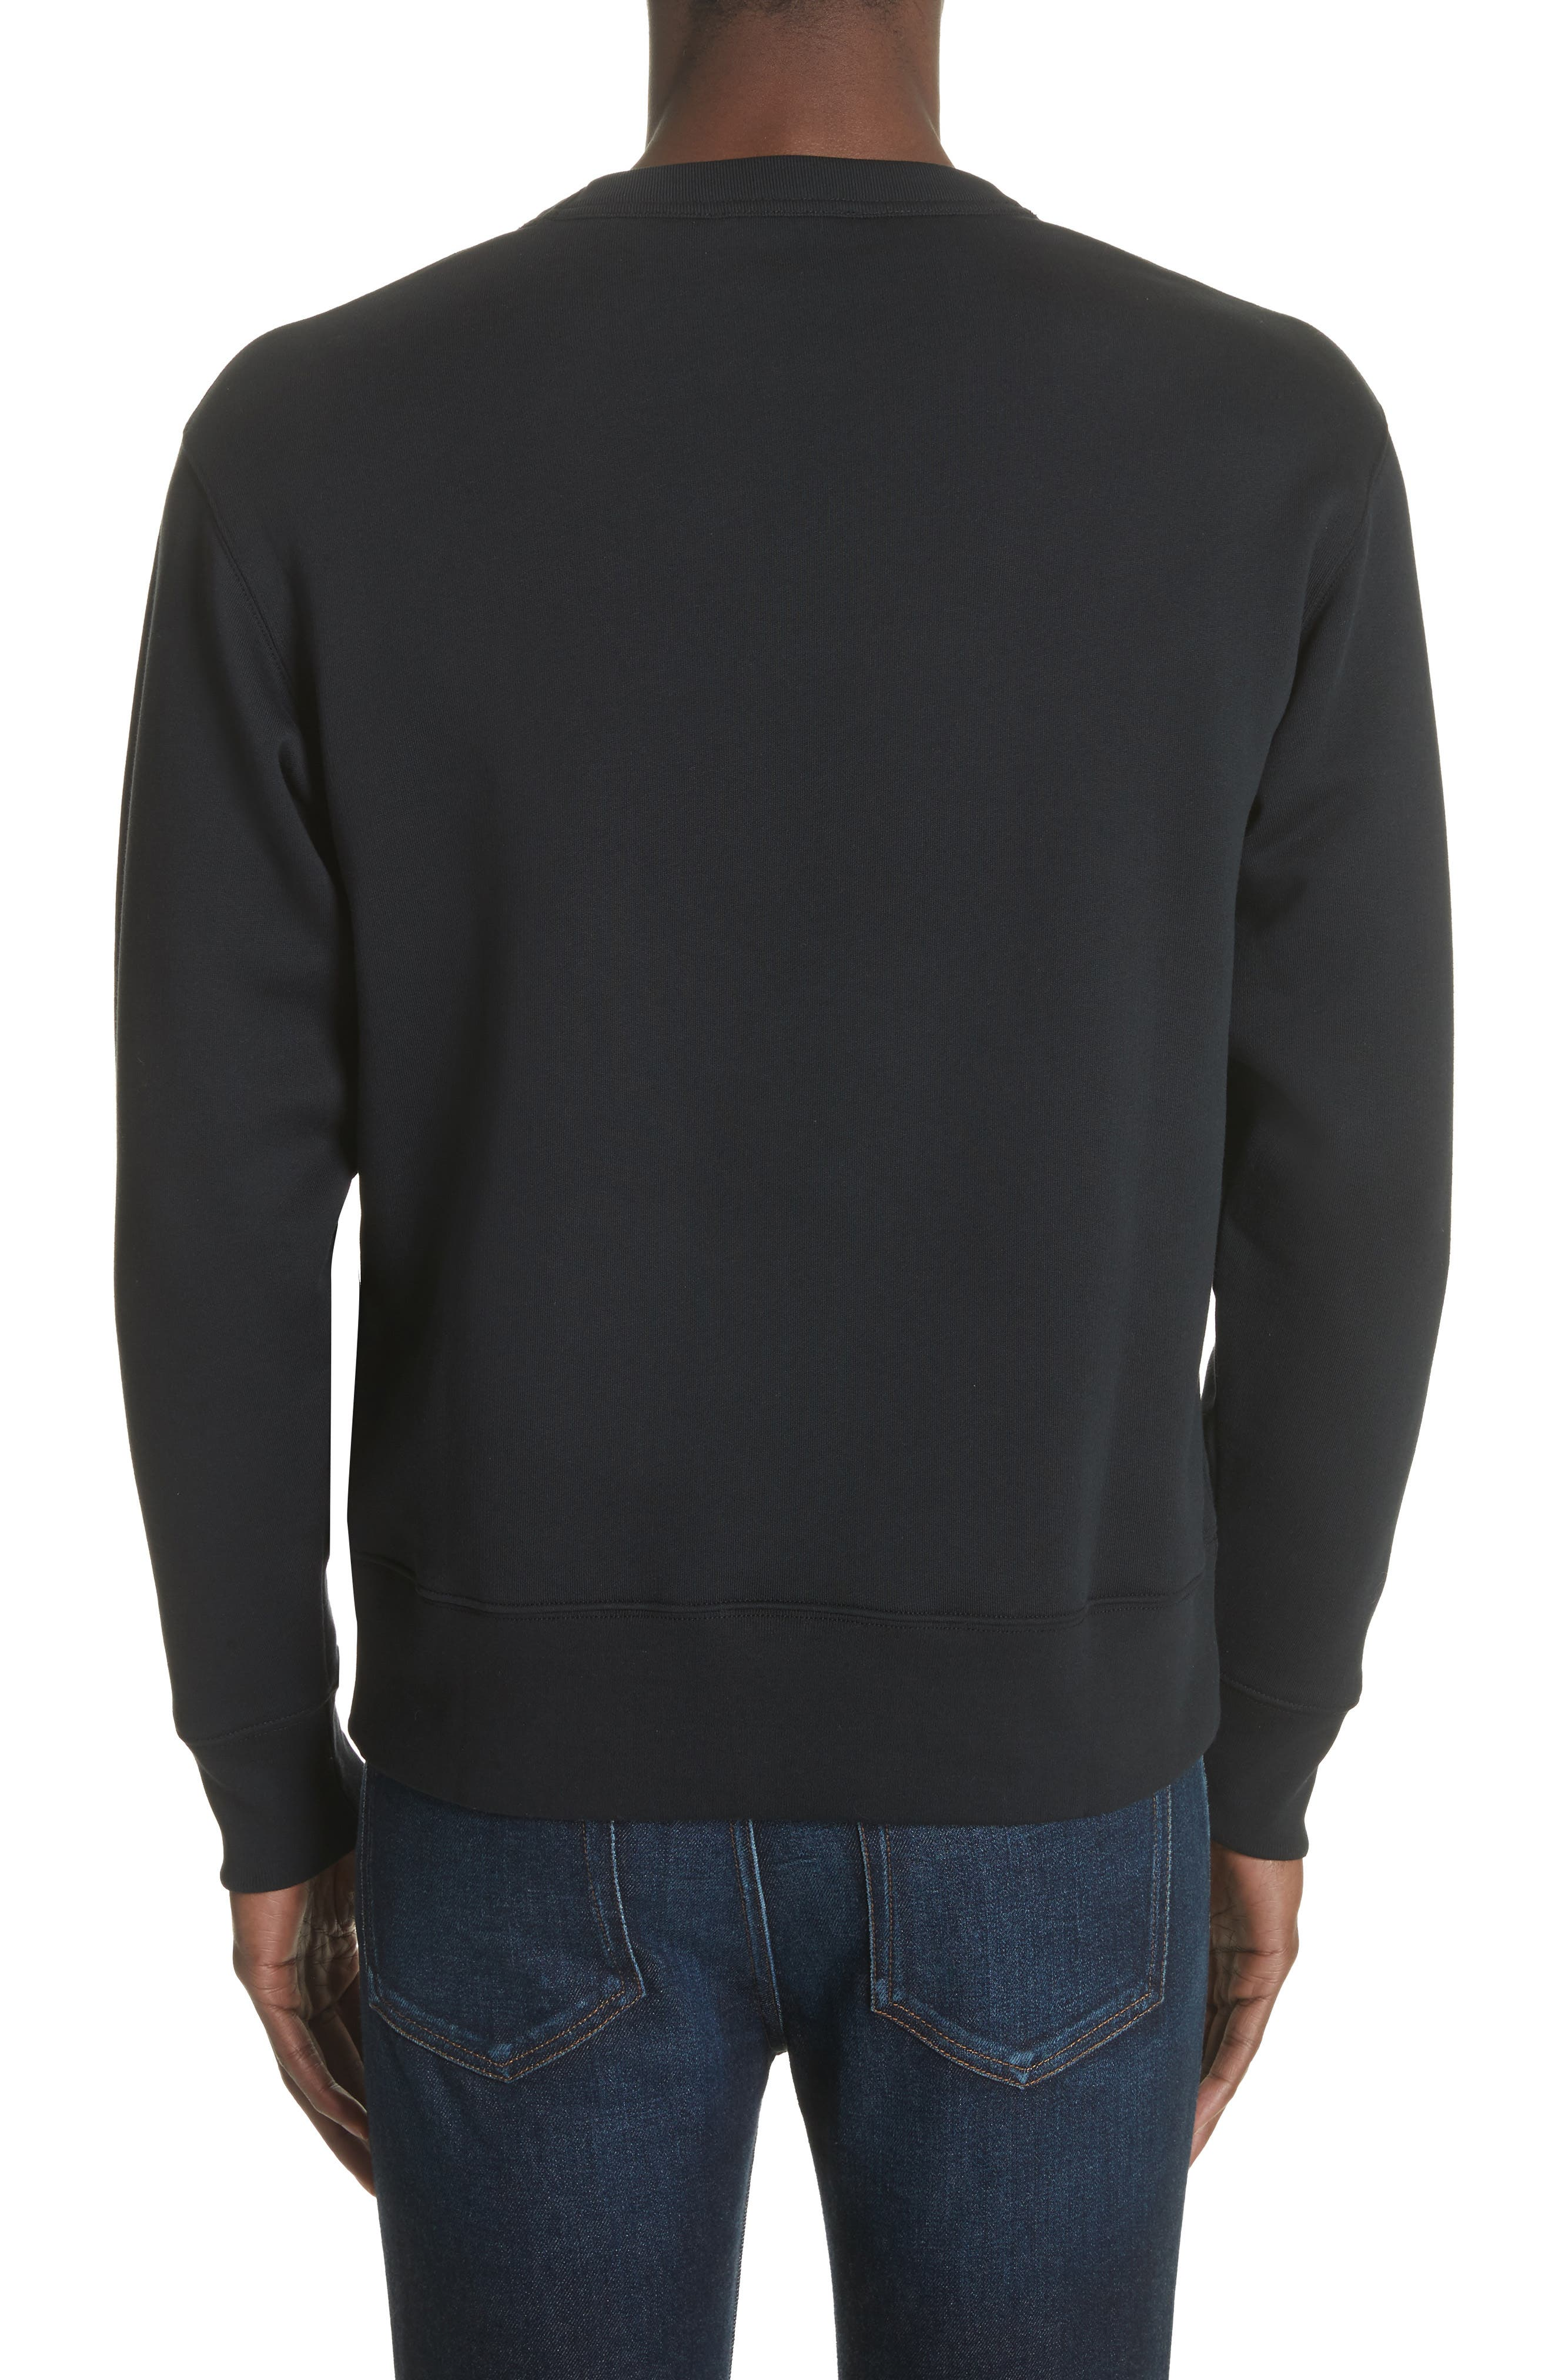 ACNE STUDIOS, Fairview Face Crewneck Sweatshirt, Alternate thumbnail 2, color, BLACK